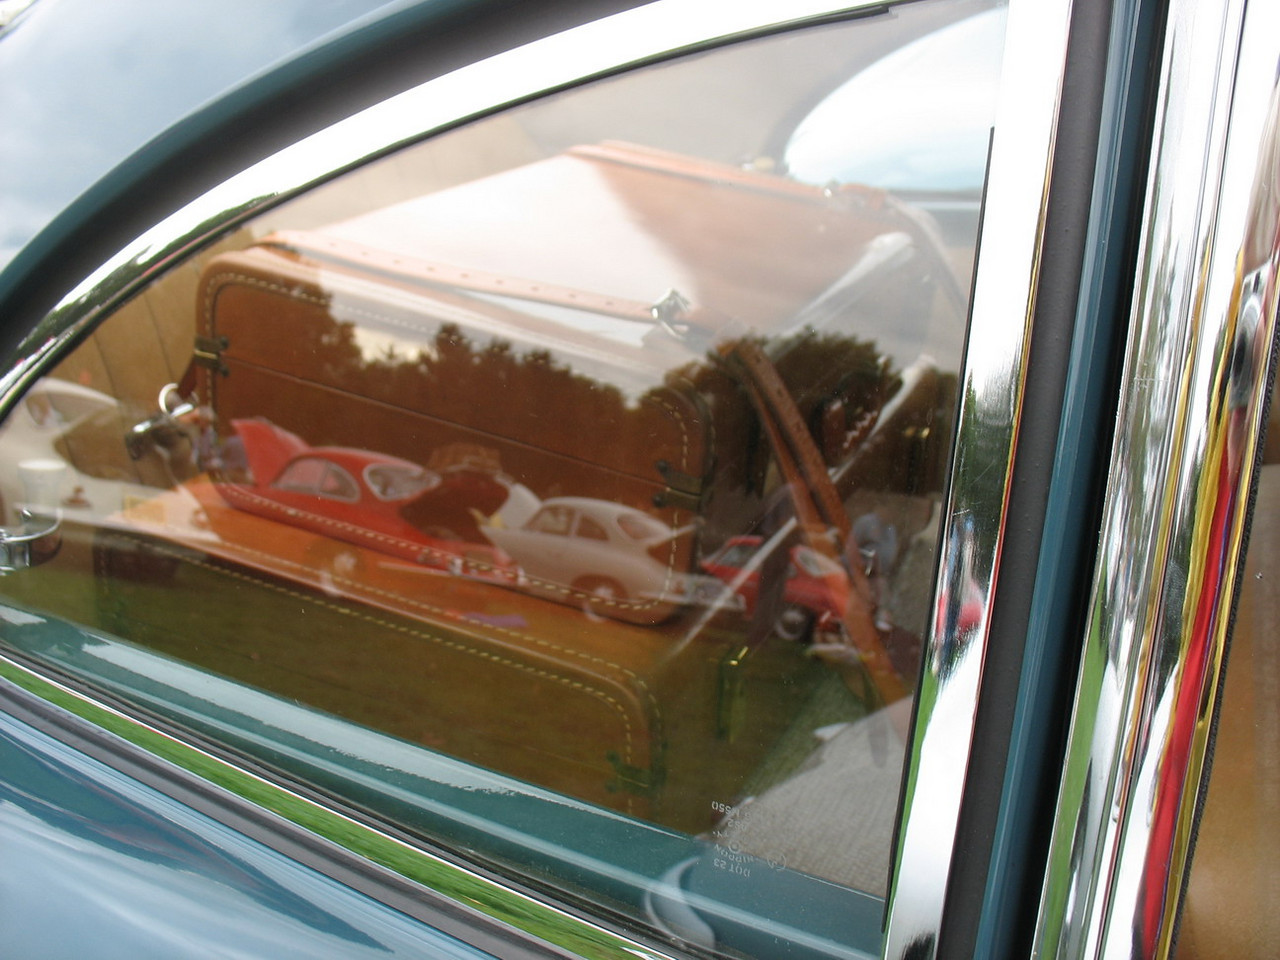 Porsche luggage strapped into the back of an early car. Also interesting reflections.